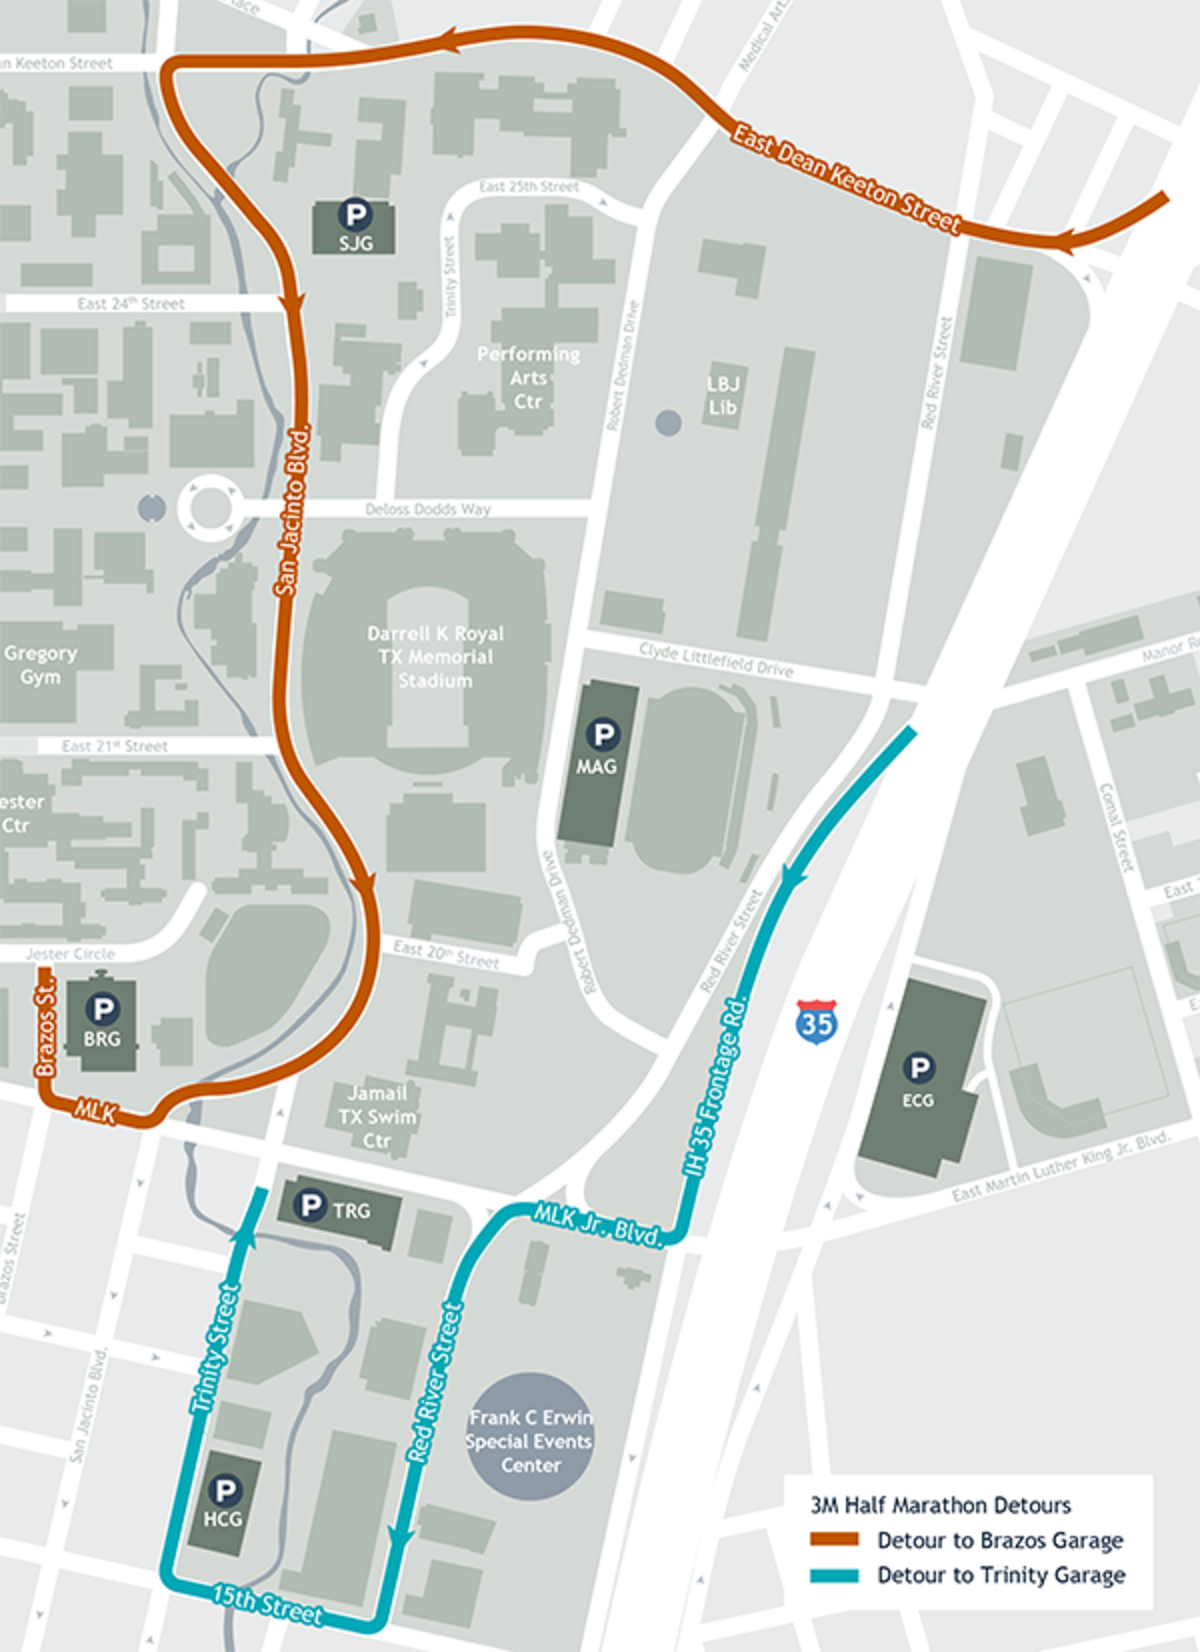 Parking and Traffic Disruptions for the 3M Half Marathon